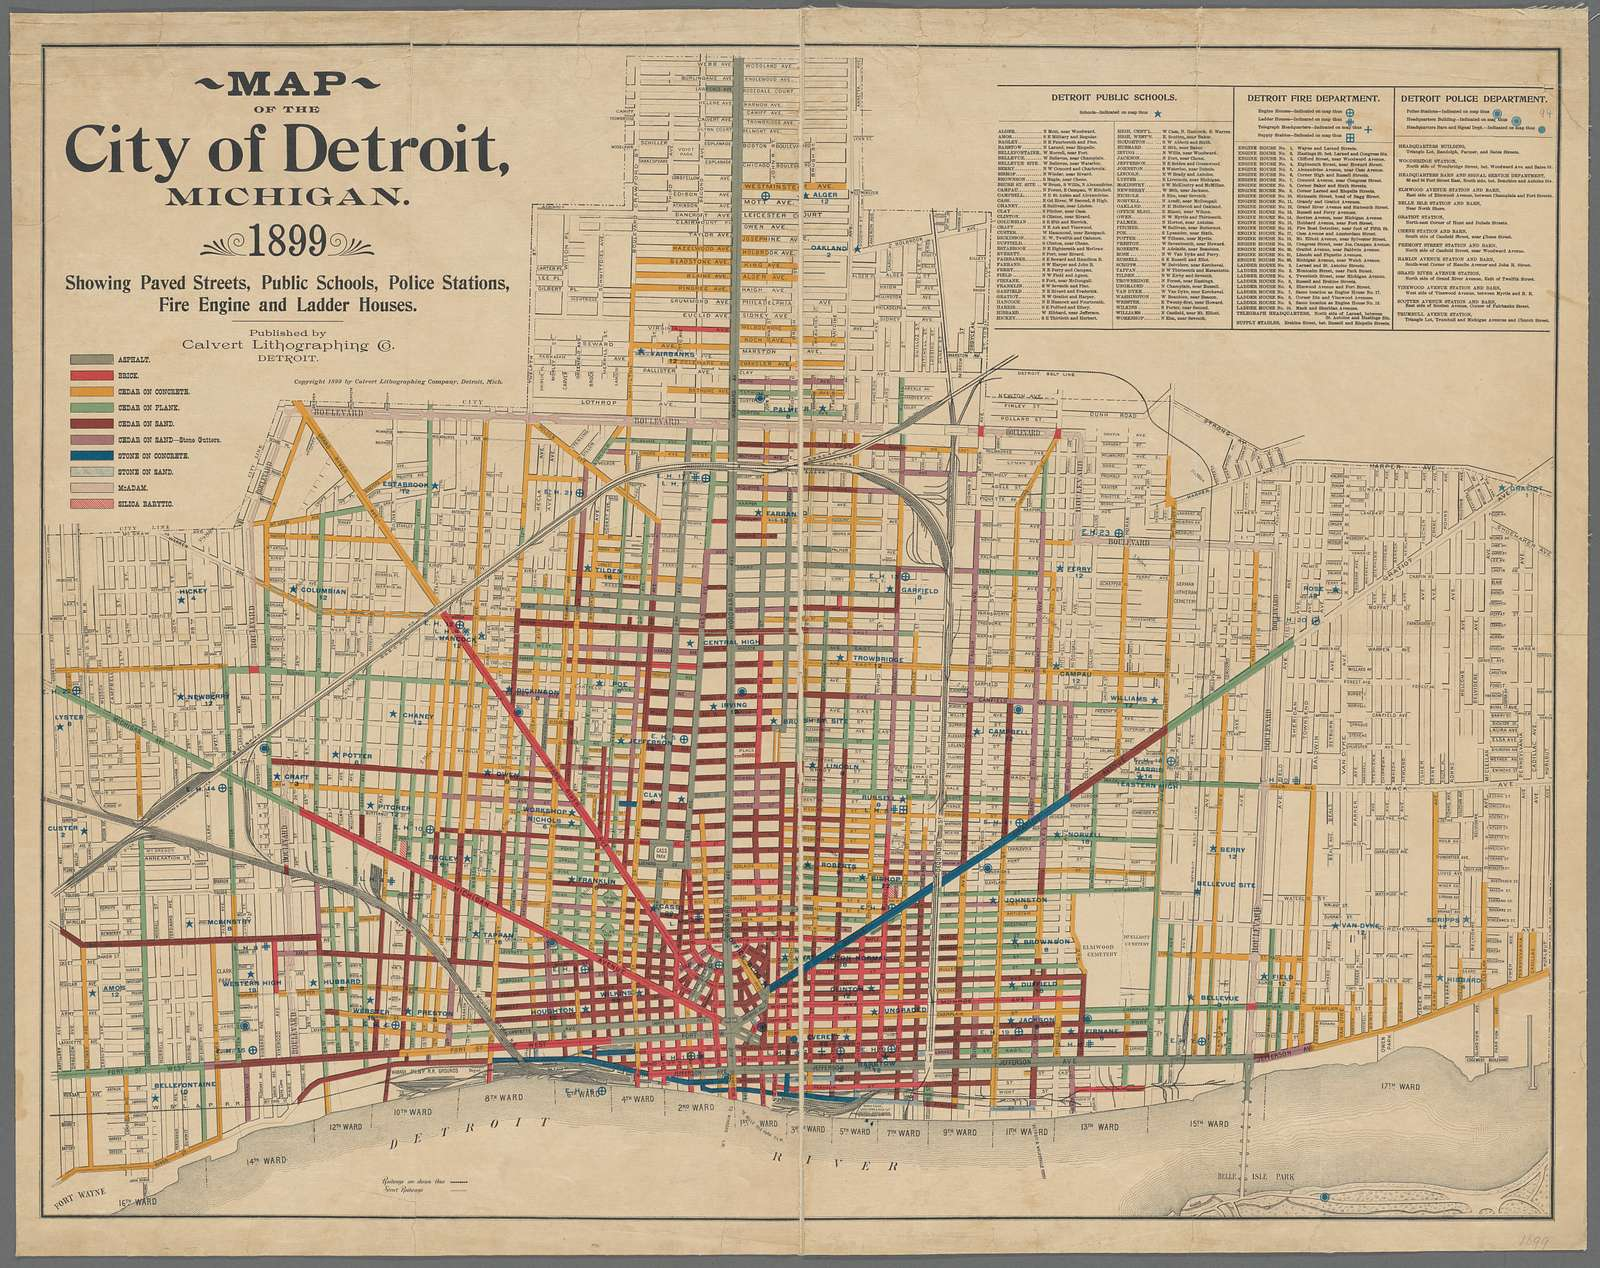 Map of the city of Detroit, Michigan, 1899 : showing paved streets, public schools, police stations, fire engine and ladder houses